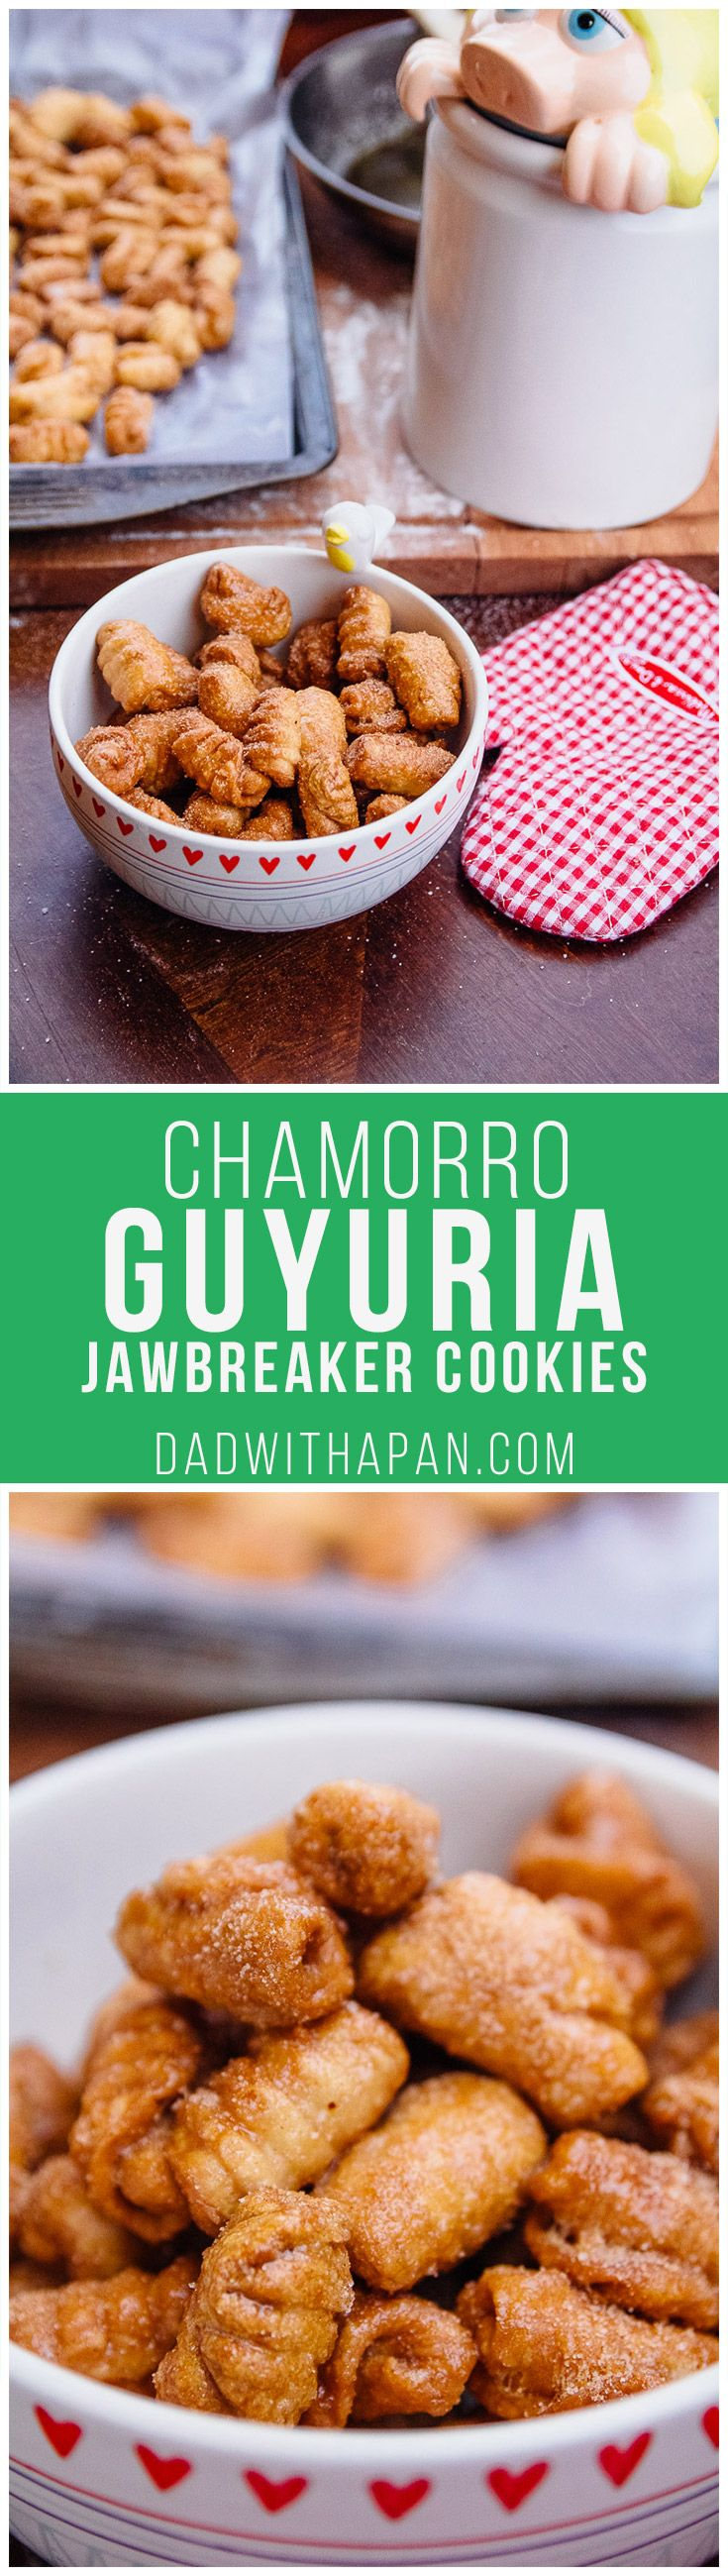 Guyuria - Chamorro Jawbreaker Cookies - easy buttery spread swap to make these dairy-free, too!